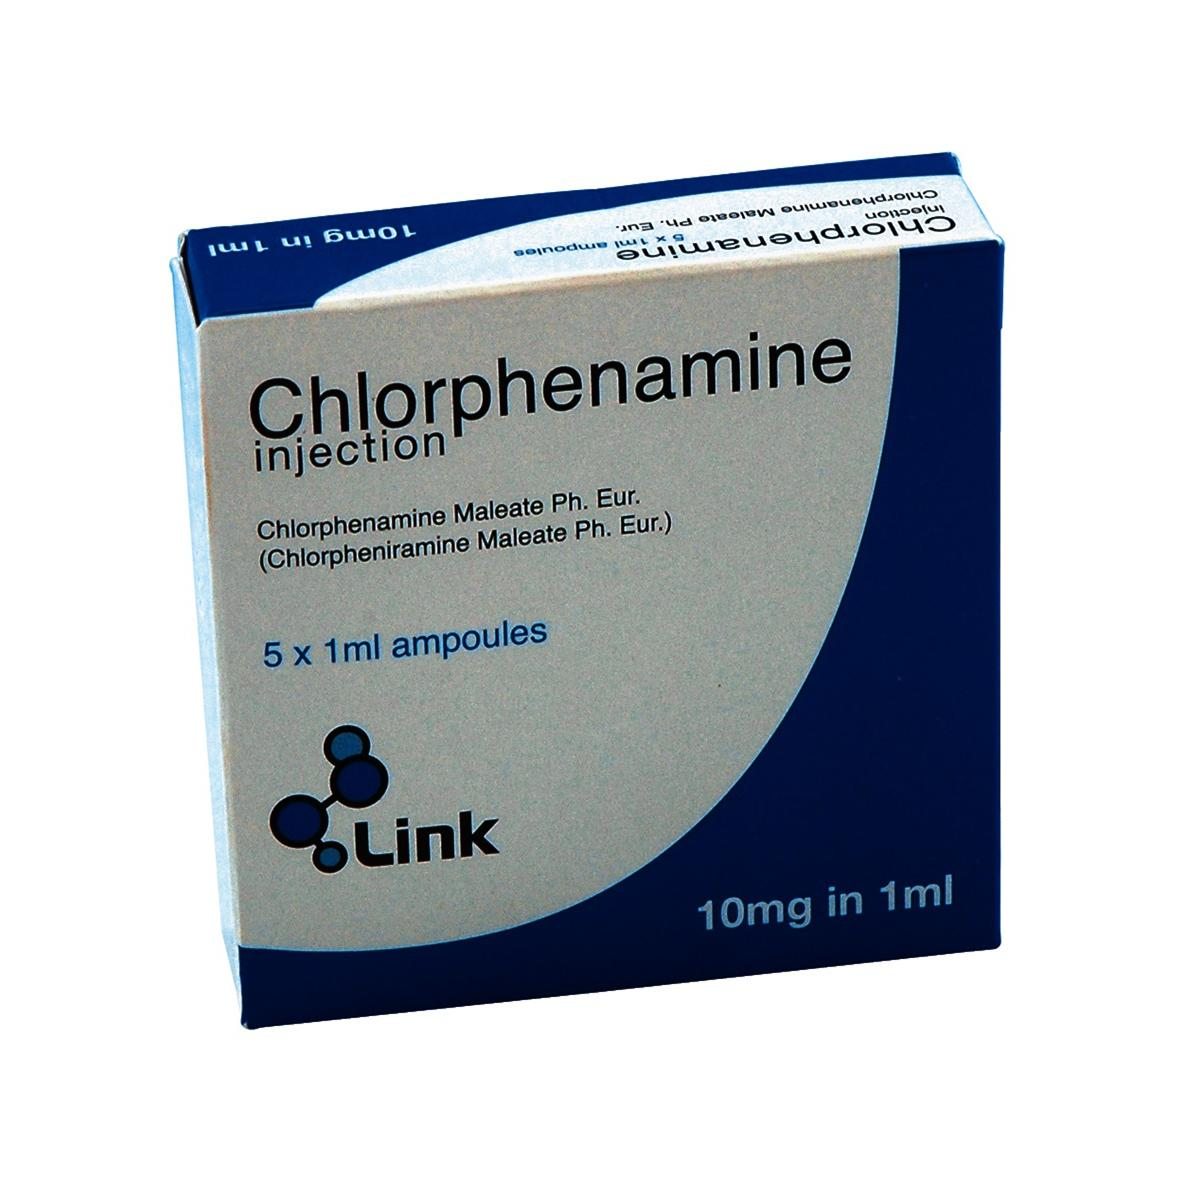 Great Value (POM) Chlorphenamine 10mg/1ml Injection 10mg/1ml Injection | A-C | PHA/CHL/003 |